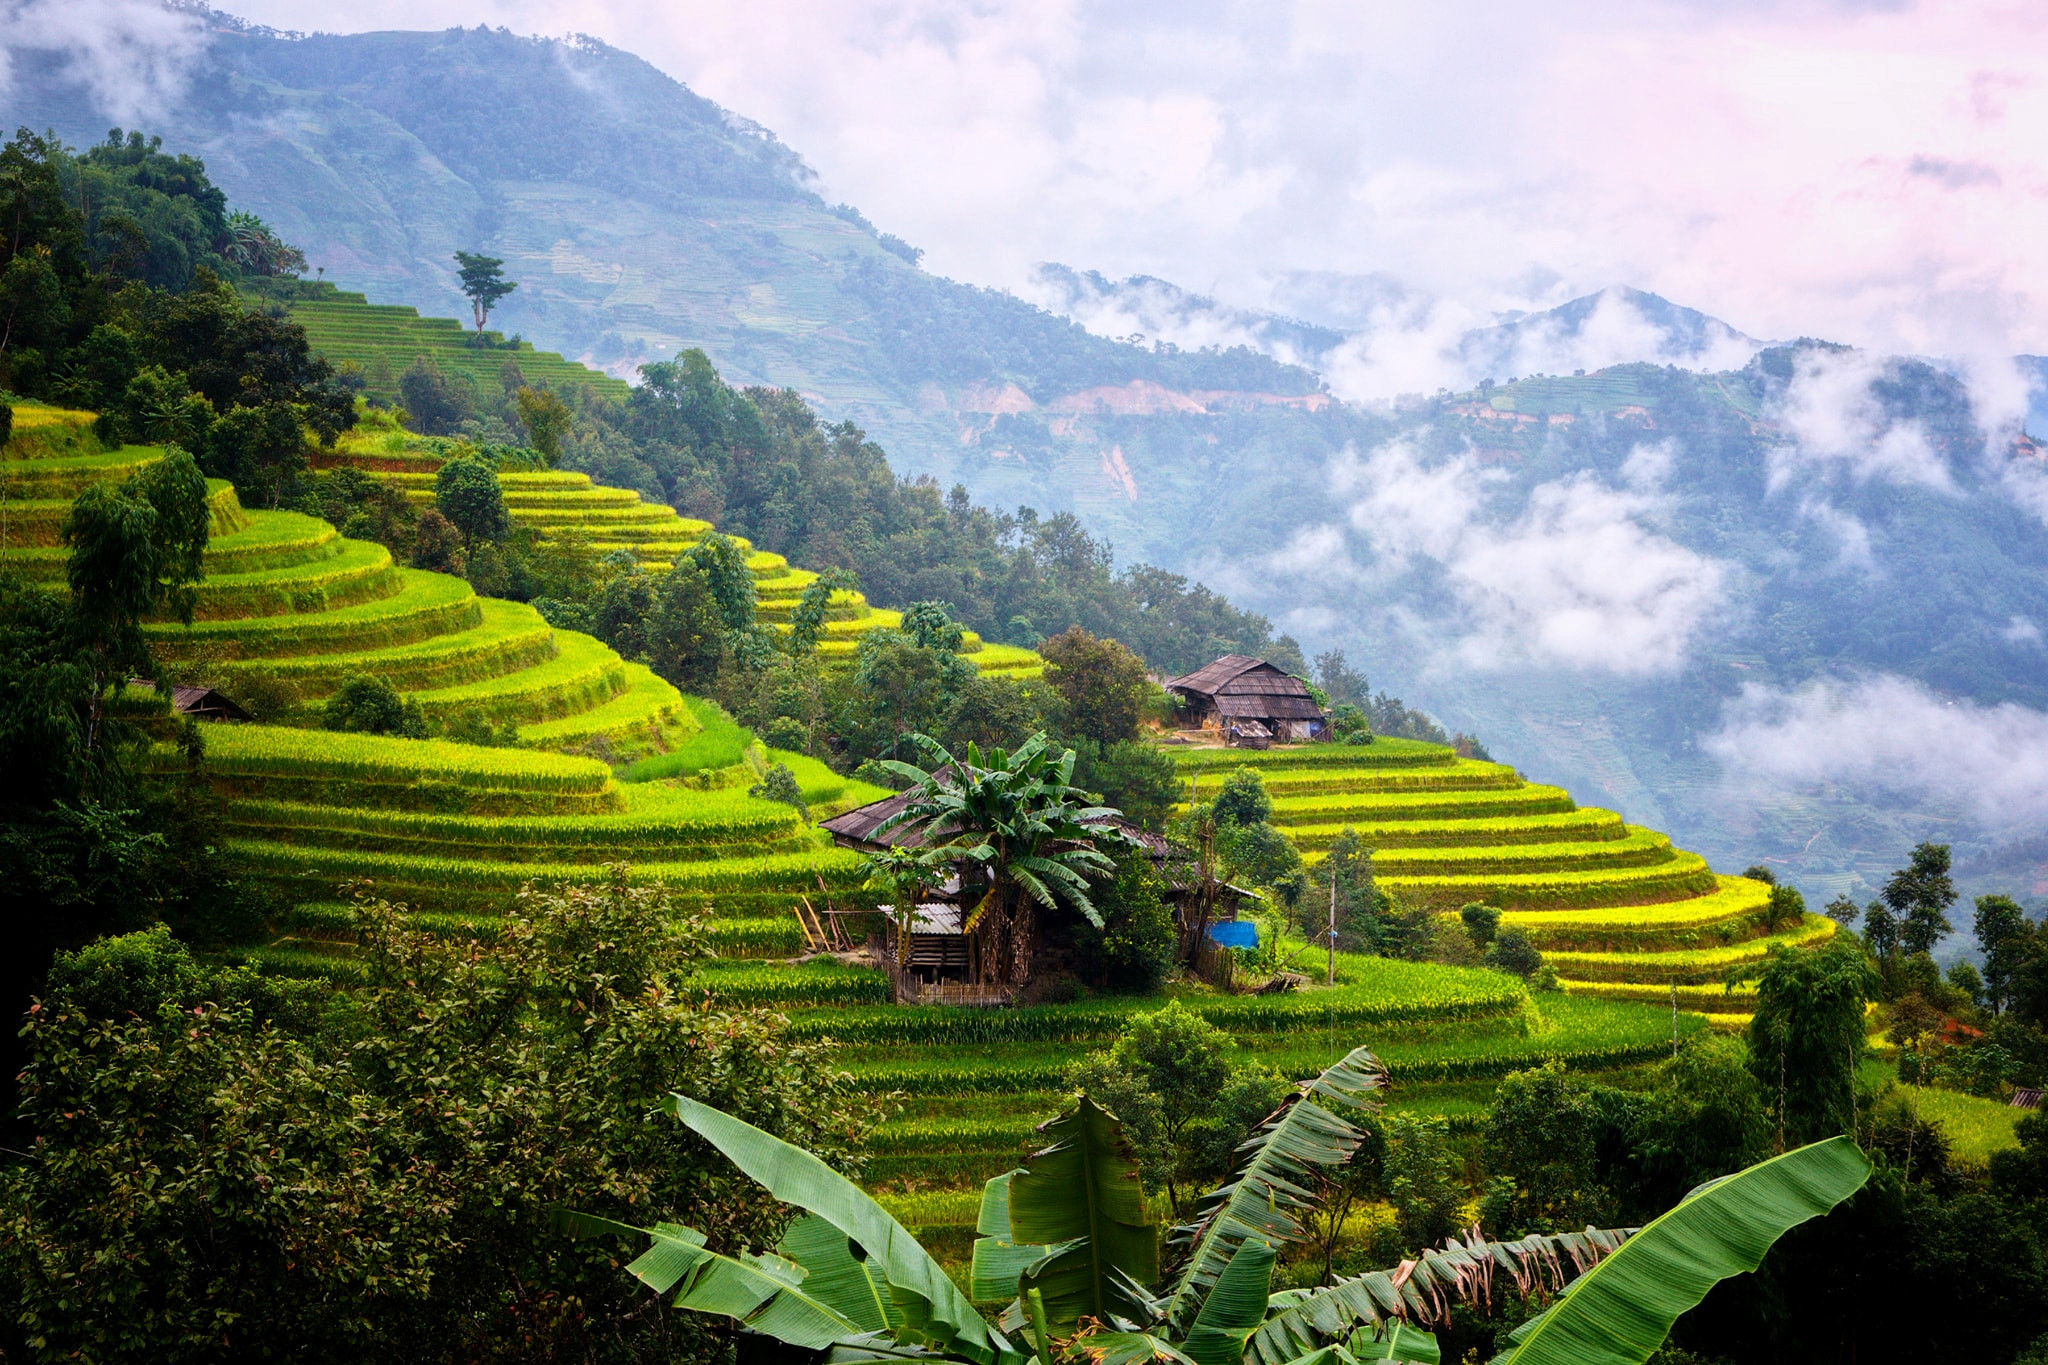 ha giang rice paddies in vietnam